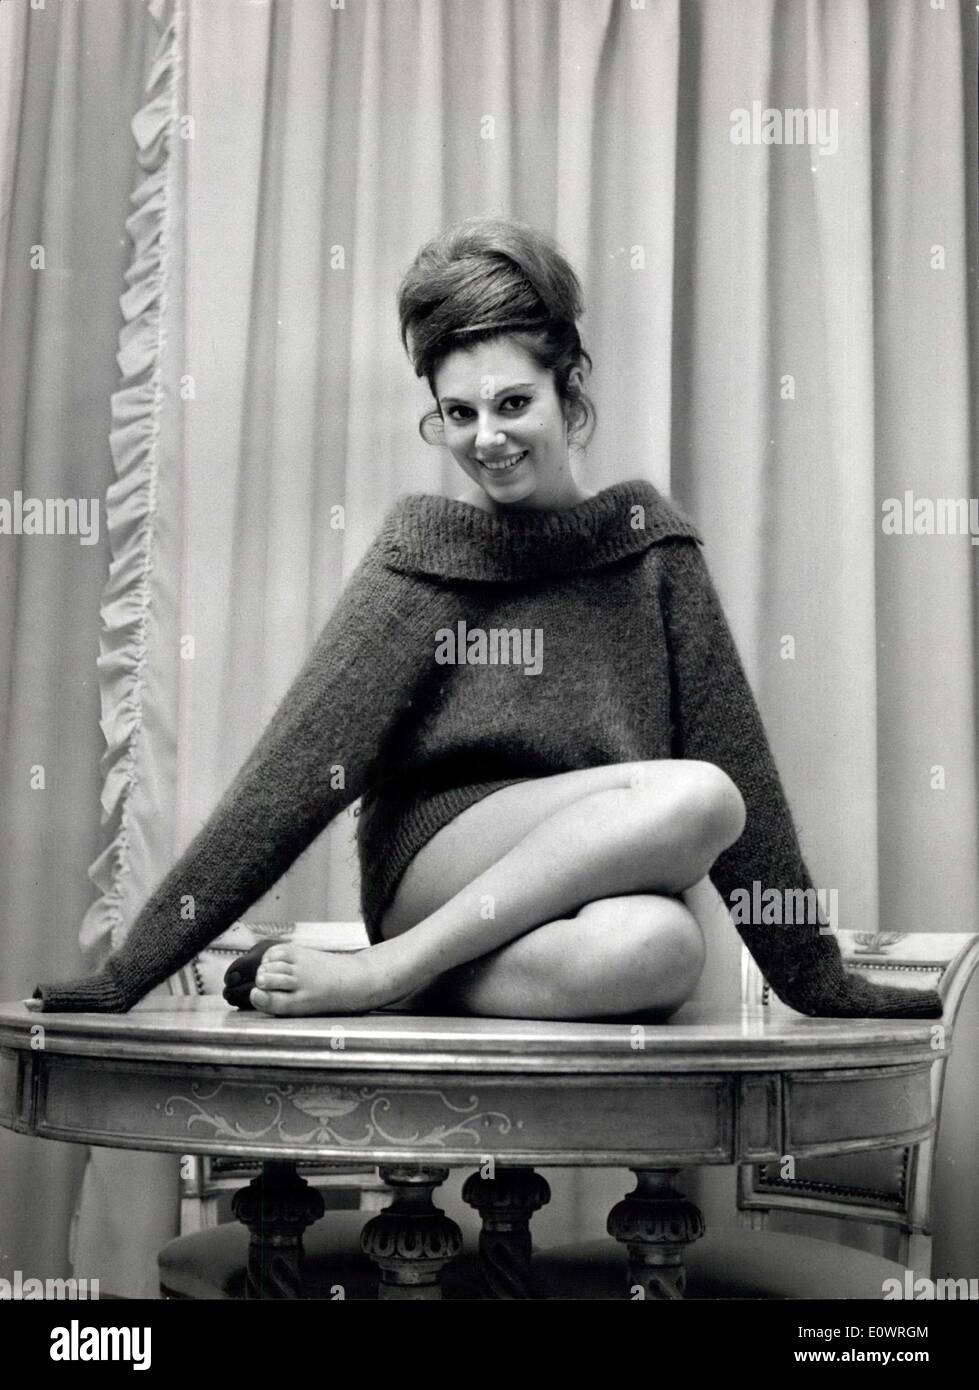 28 1963 ombretta colli 38 21 38 born in genova from italian father and spanish mother is only 20 but her name is already well known to movie stars